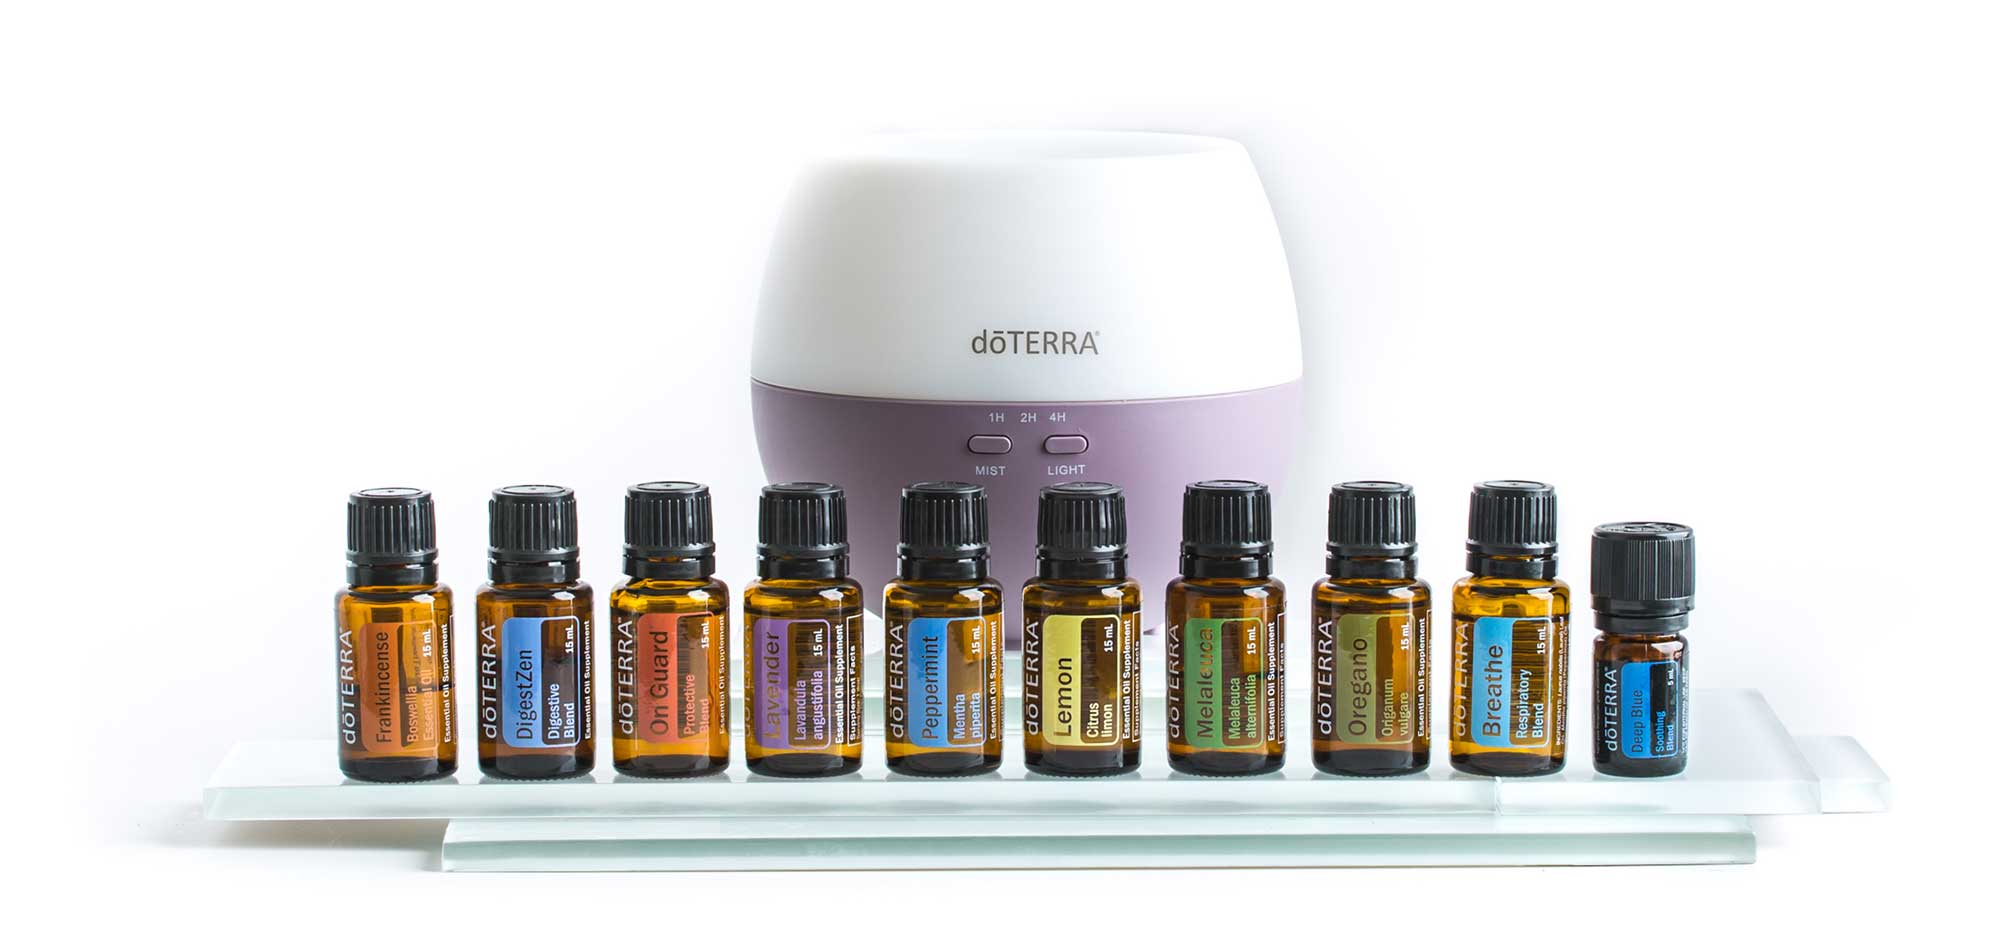 essentially-obsessed-doterra-home-essentials-kit.jpg